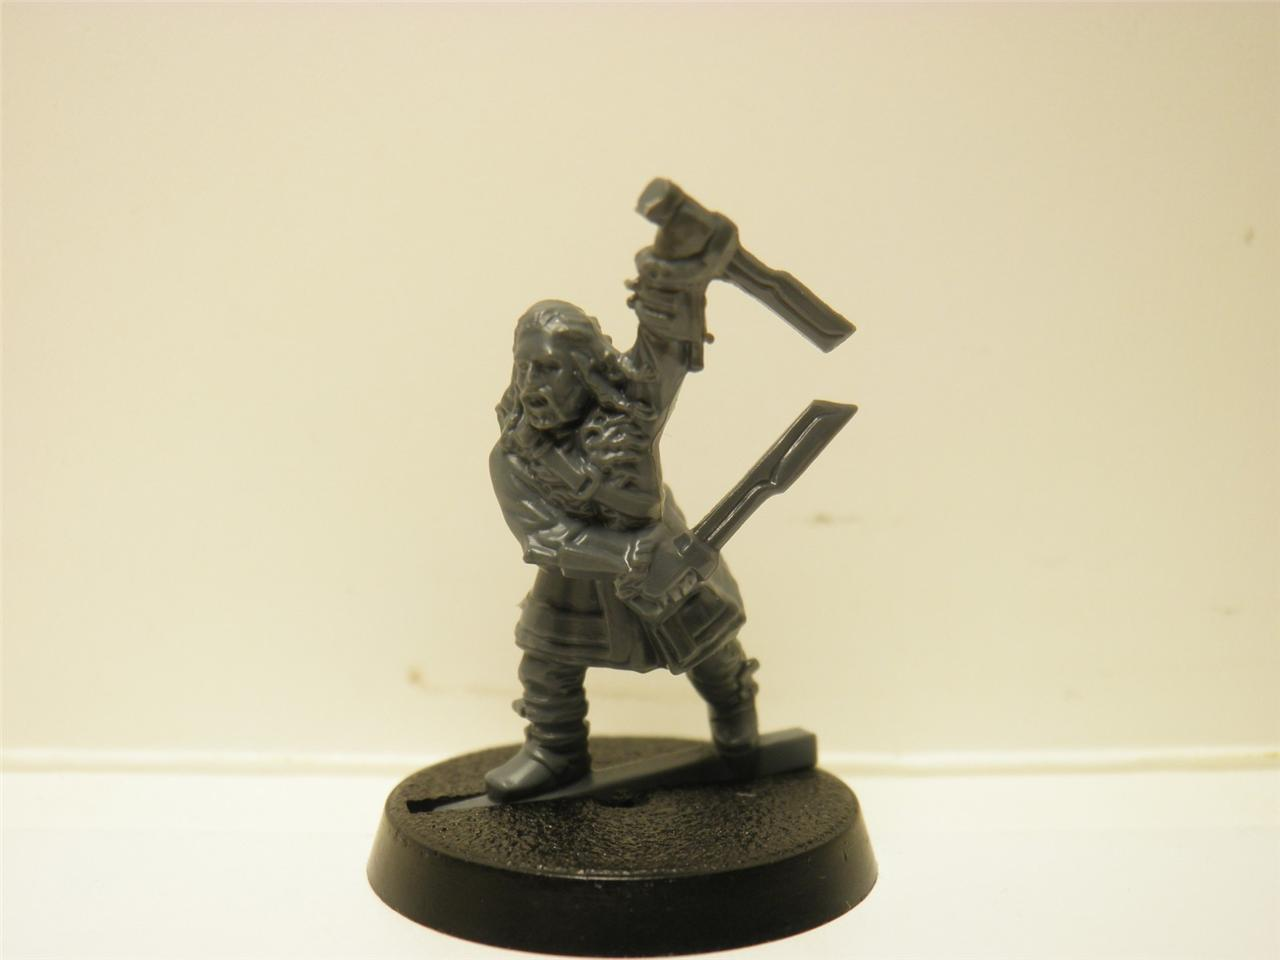 The-Hobbit-Escape-from-Goblin-Town-Miniature-Fili-the-Dwarf-NEW